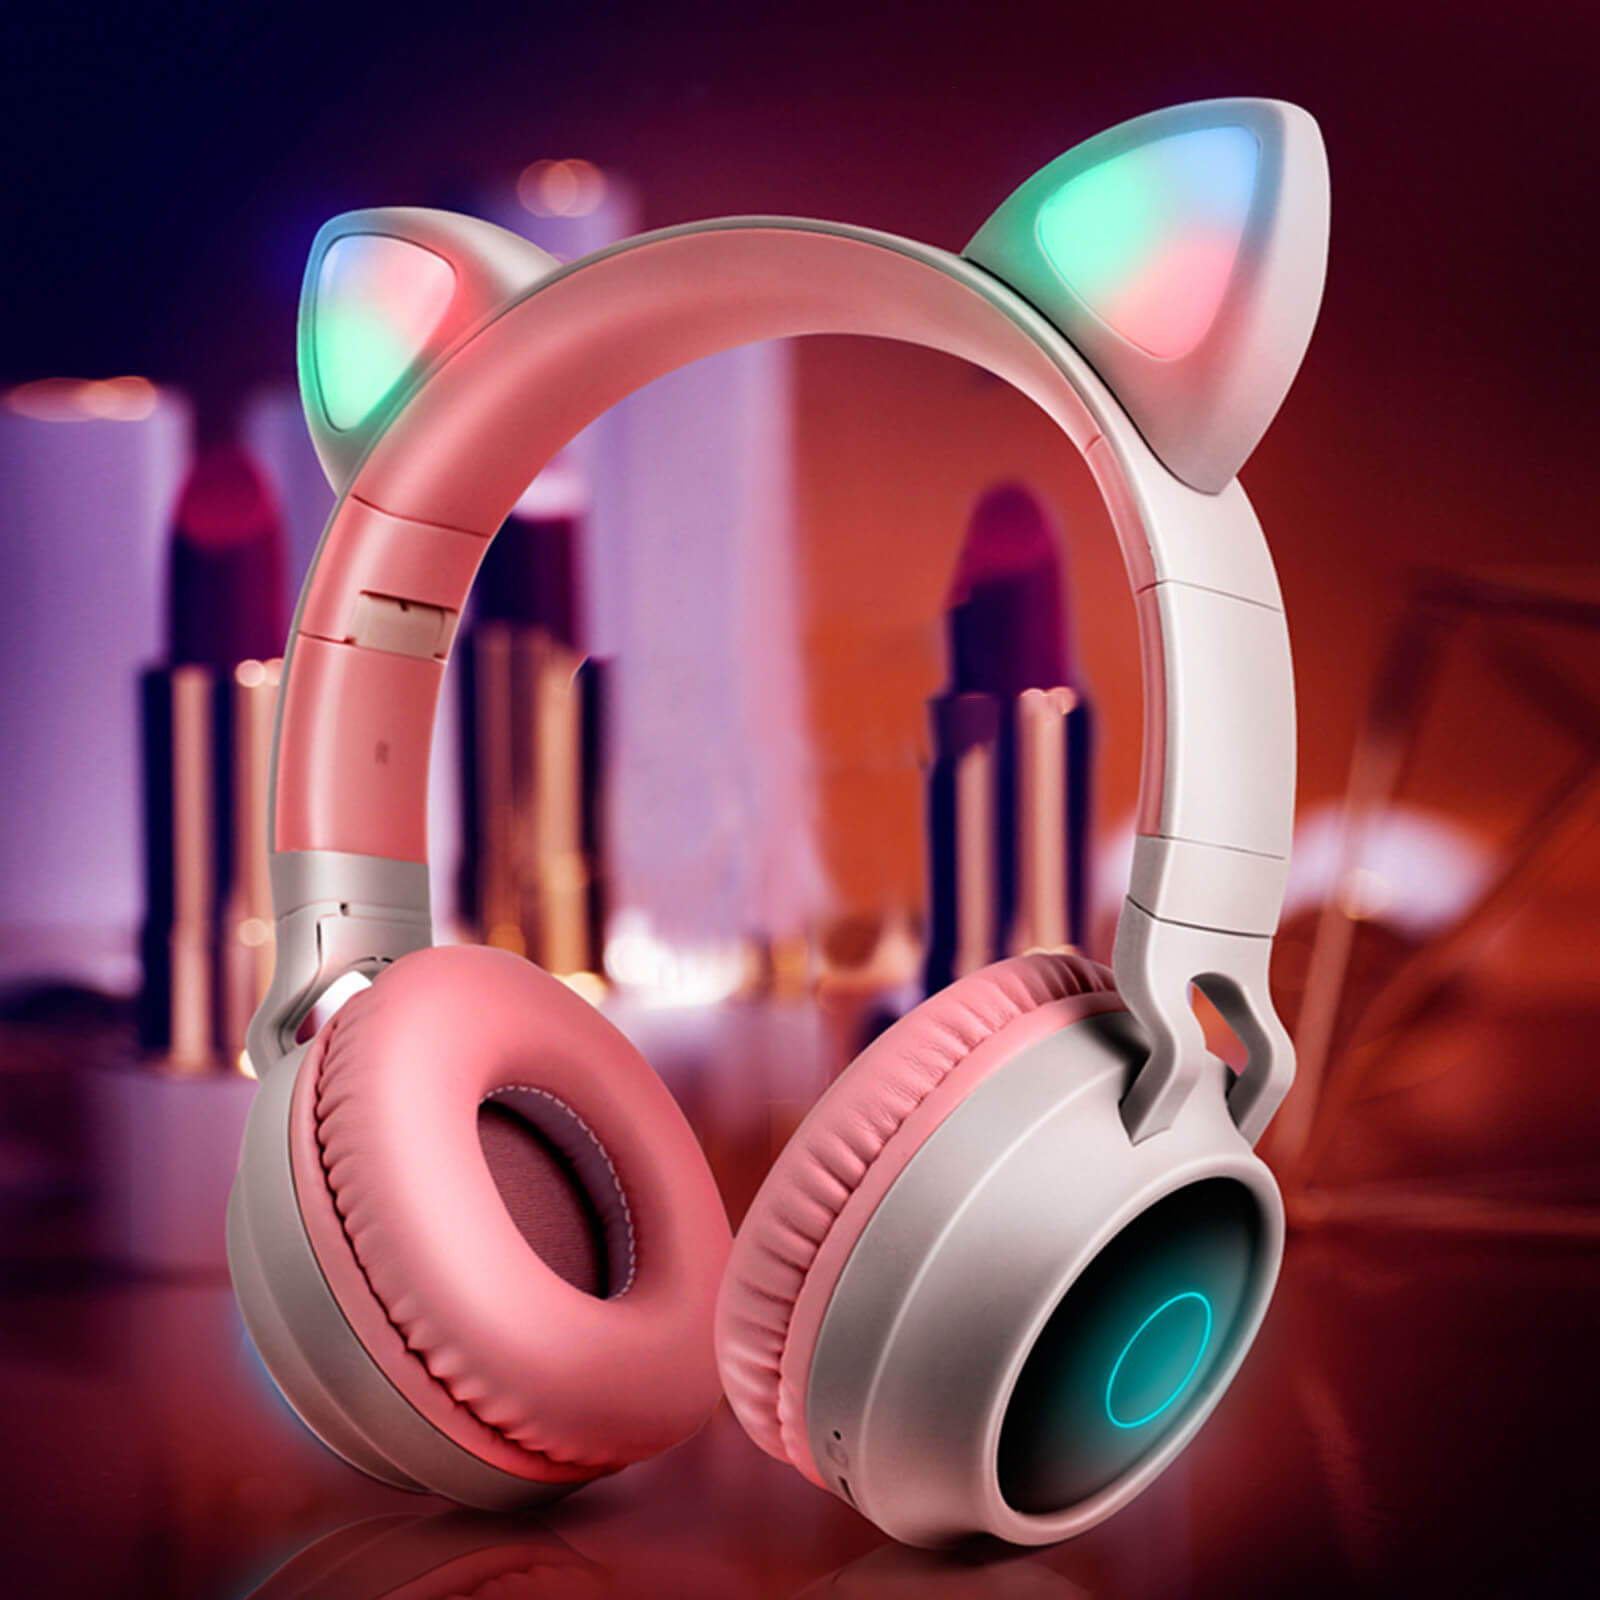 Cat Headphones Kitty Tunes, cute wireless headphone with cat ears - product image grey/pink earphones night mode, led lights turned on